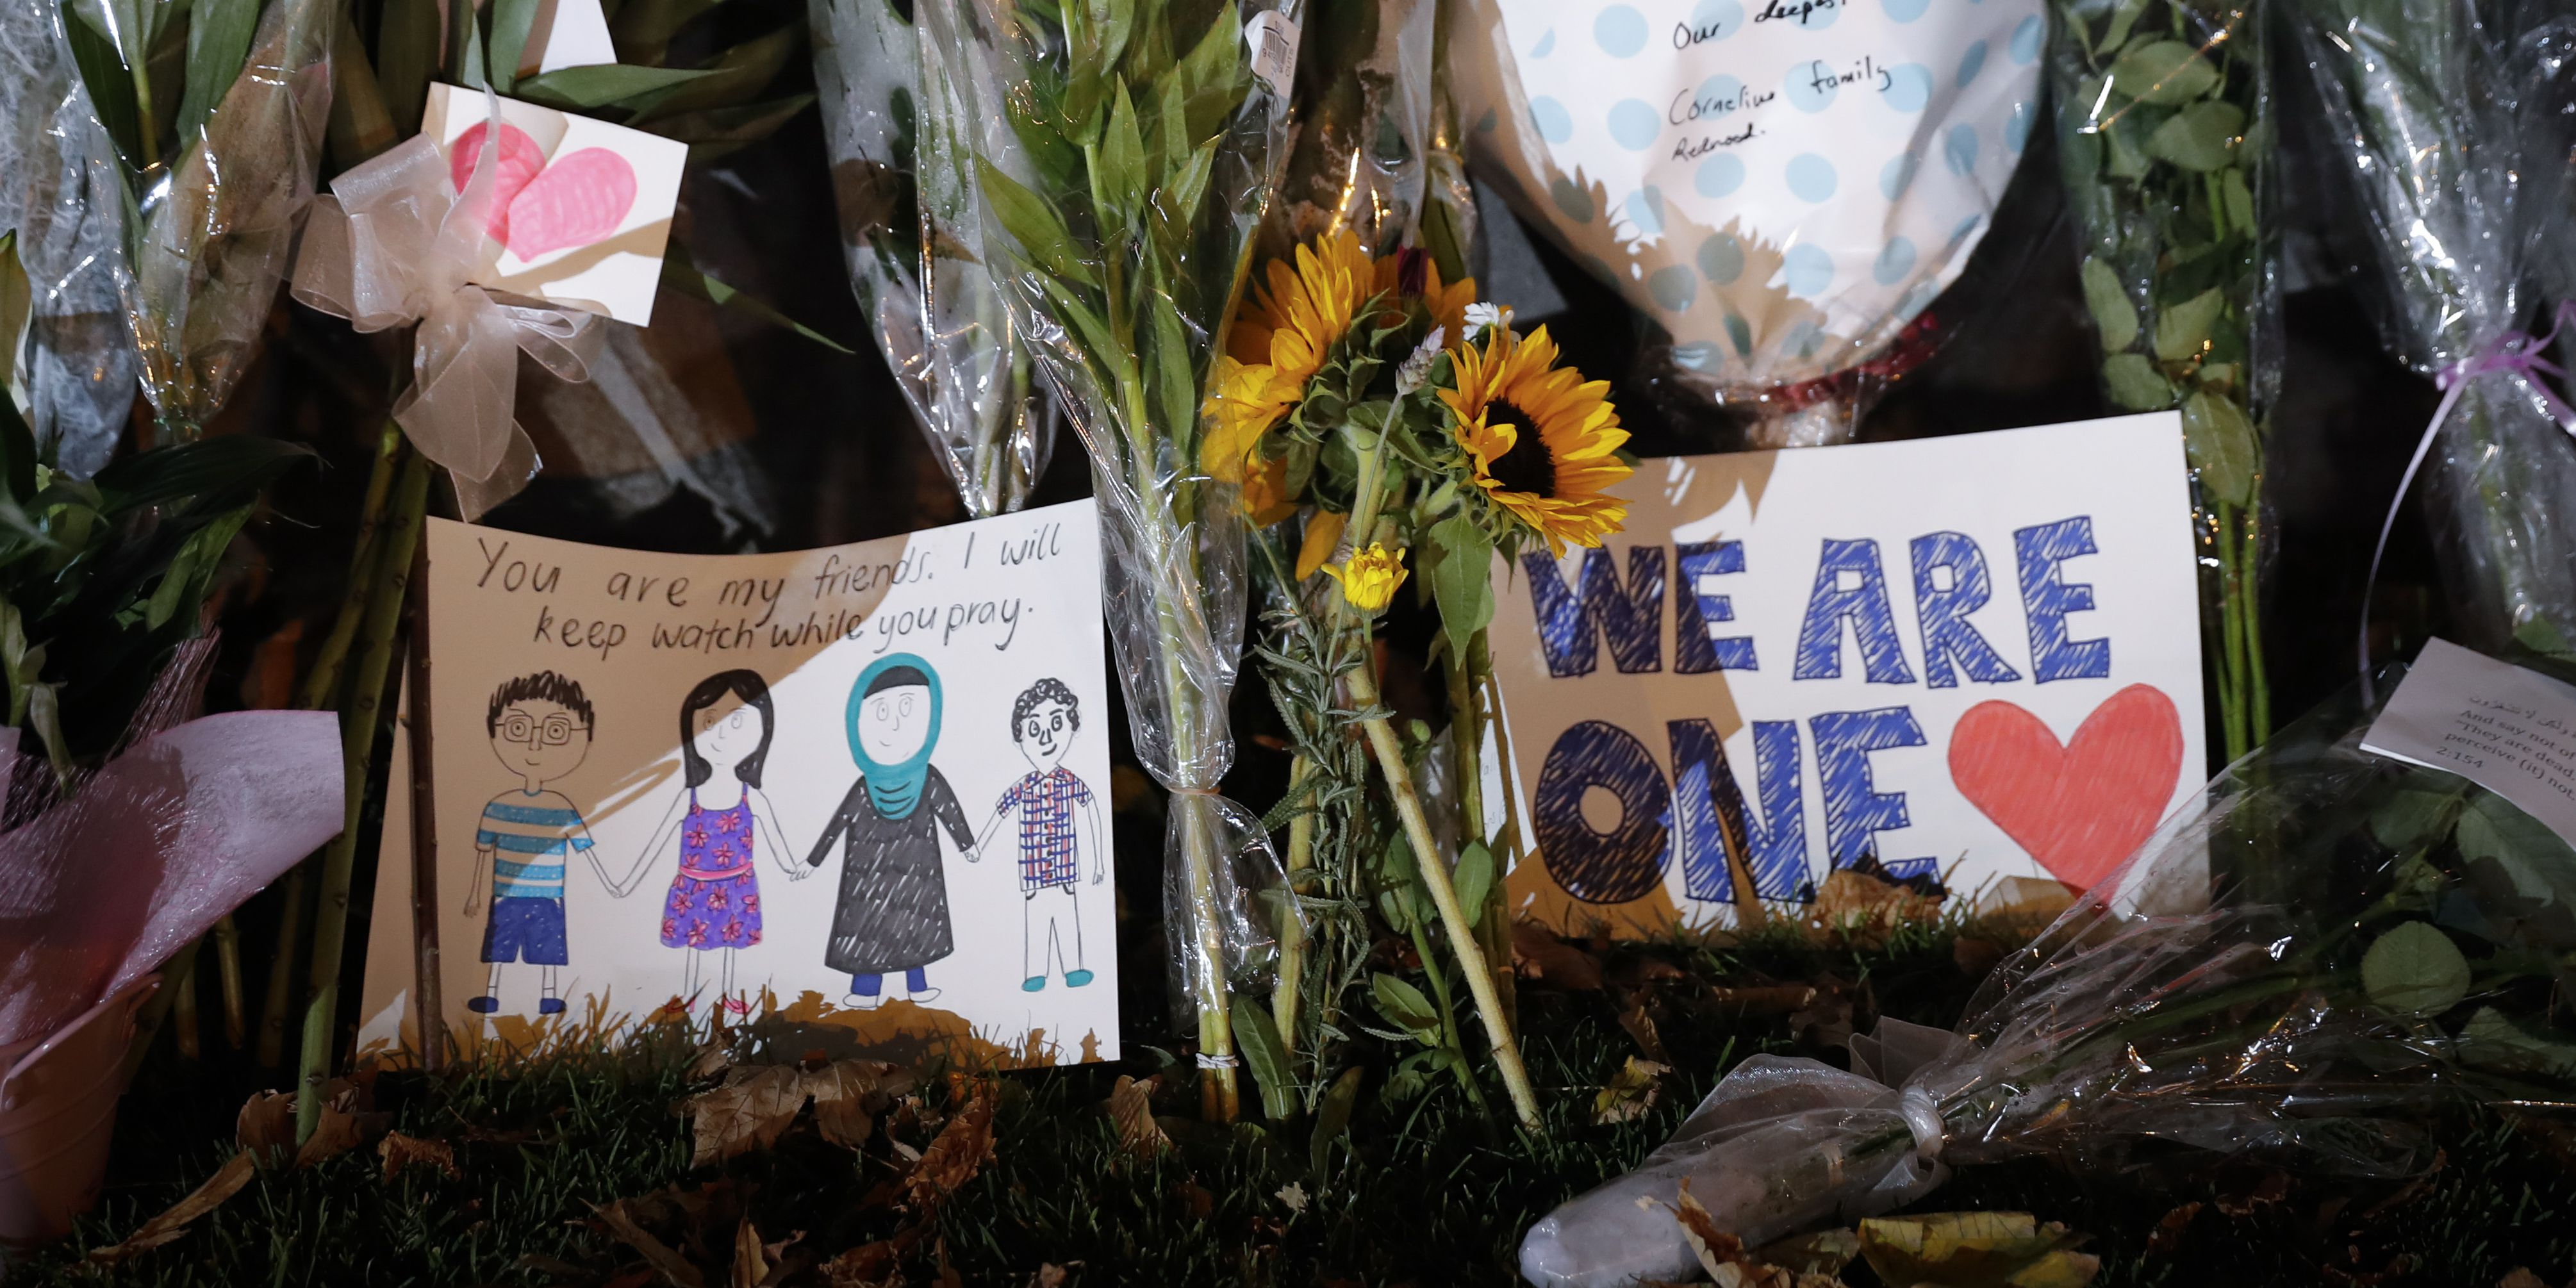 After mosque attacks, New Zealand quickly bans assault weapons